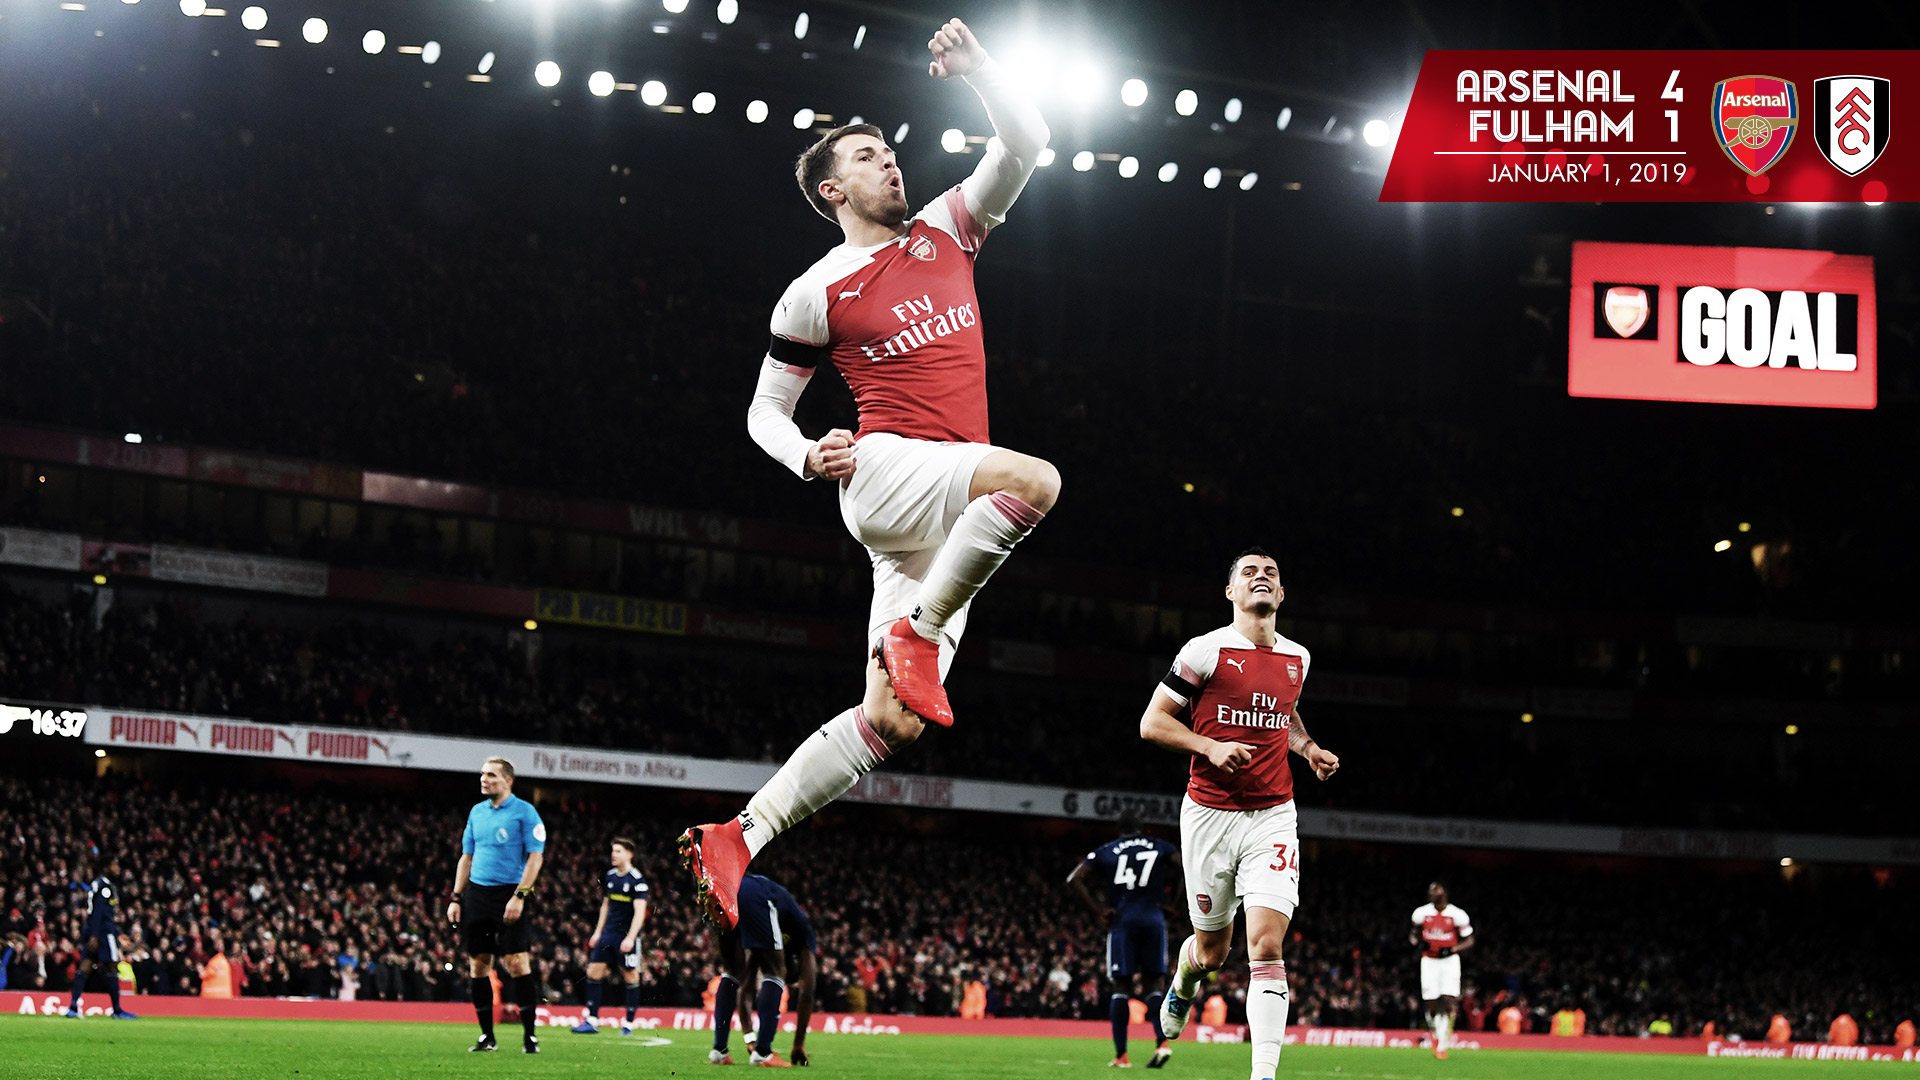 Wallpapers Arsenalcom